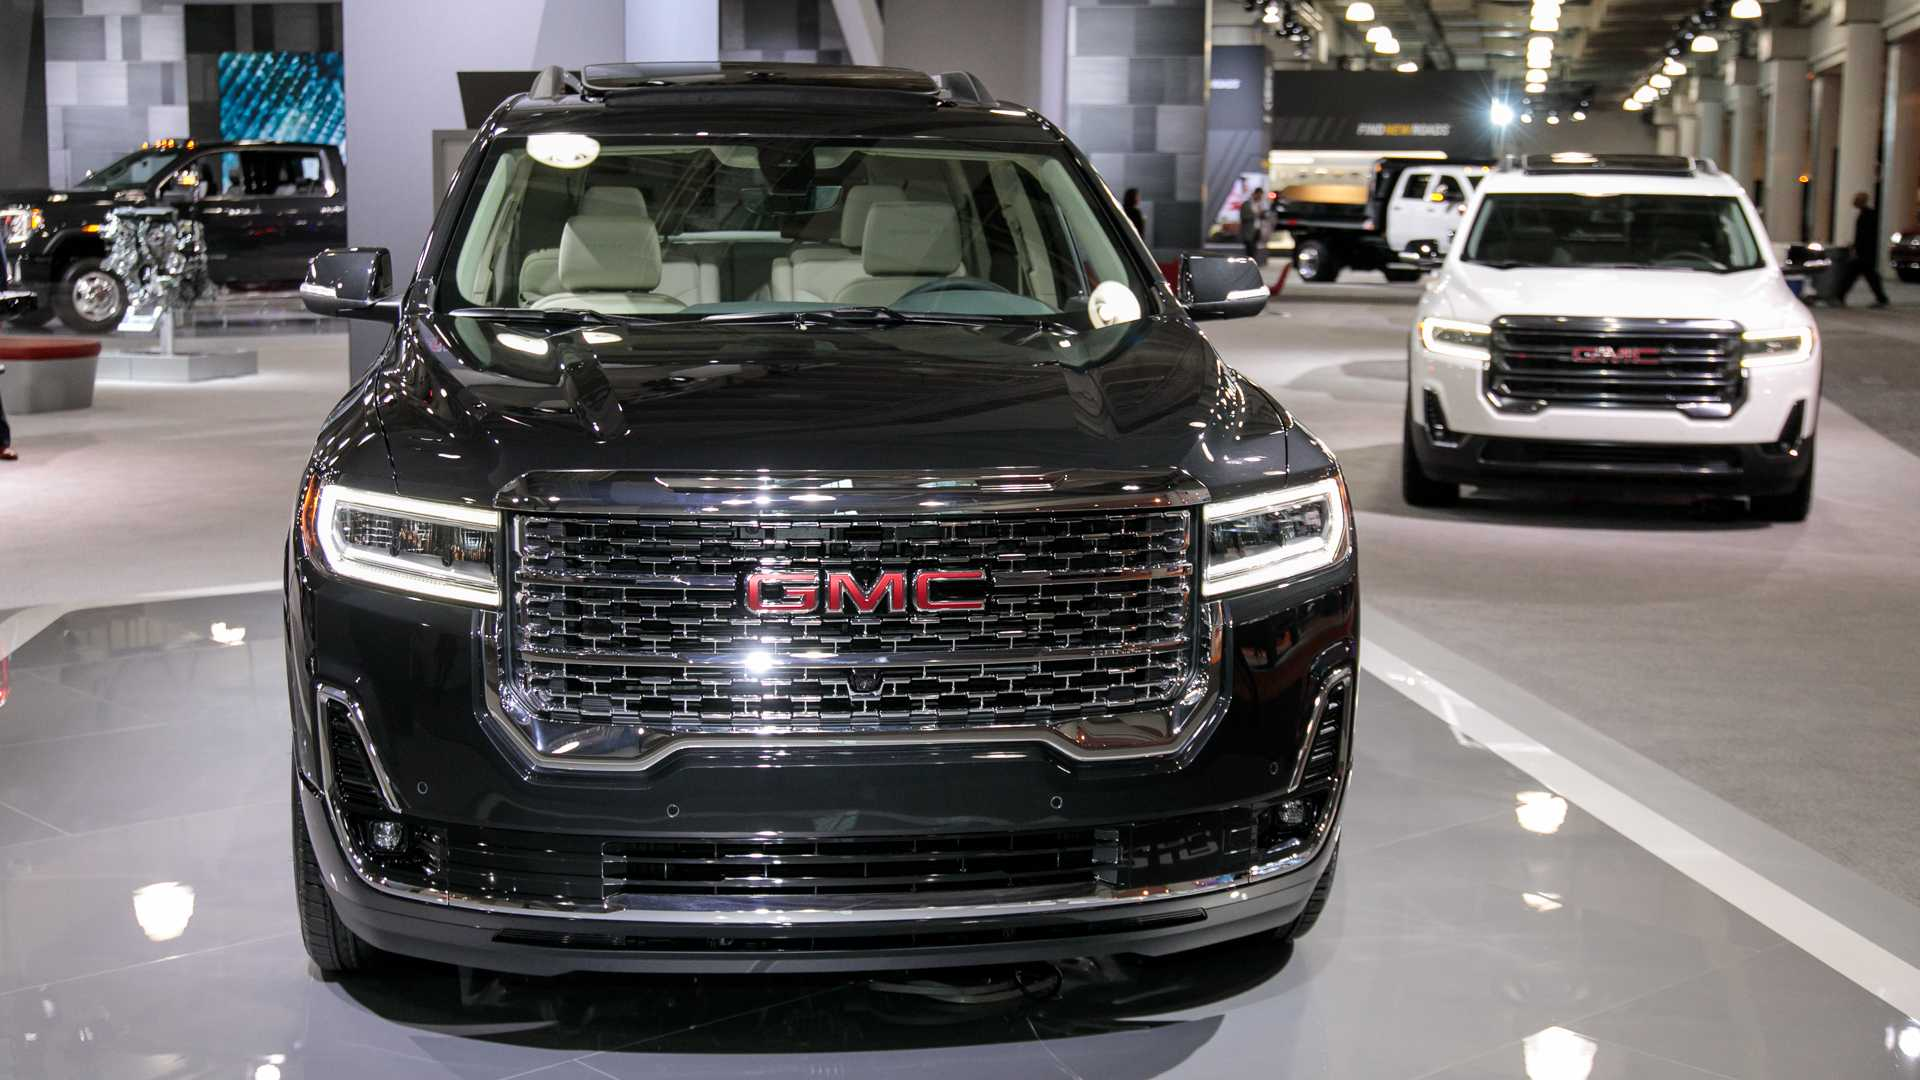 75 A 2020 GMC Acadia Mpg Price And Release Date